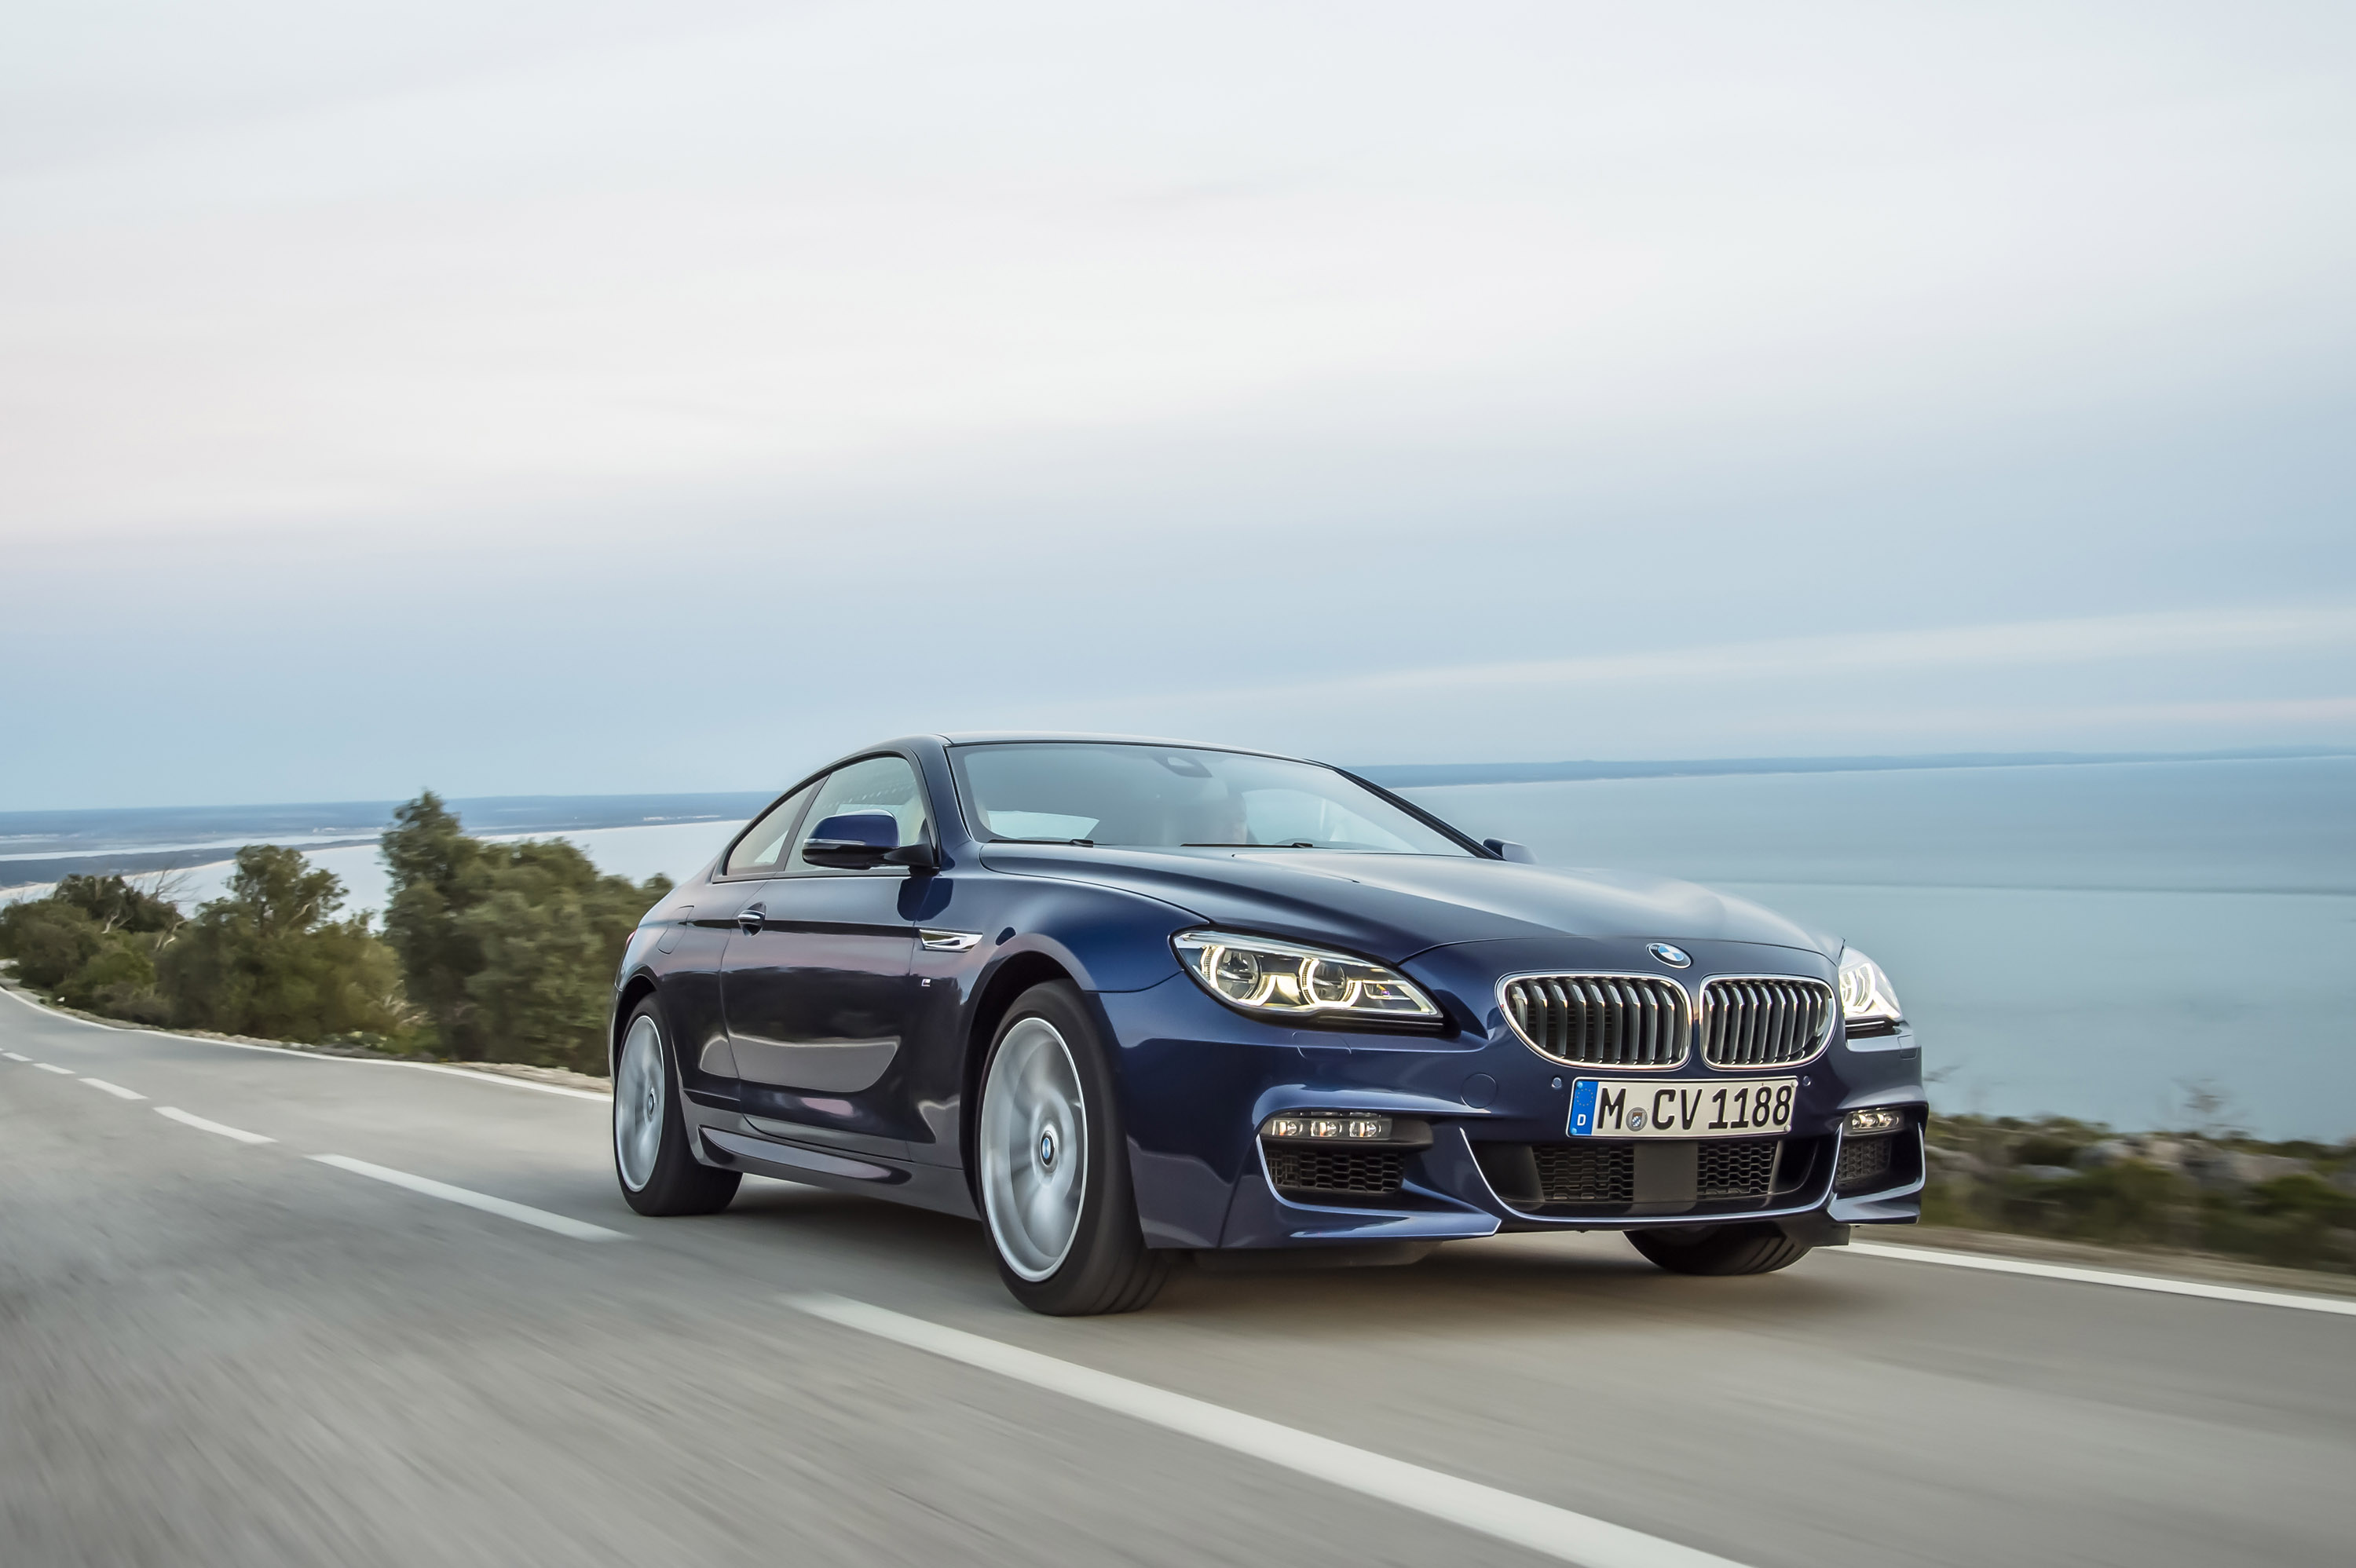 Bmw 650I 0 60 >> Bmw 6 Series Review Price Specifications And 0 60 Time Evo